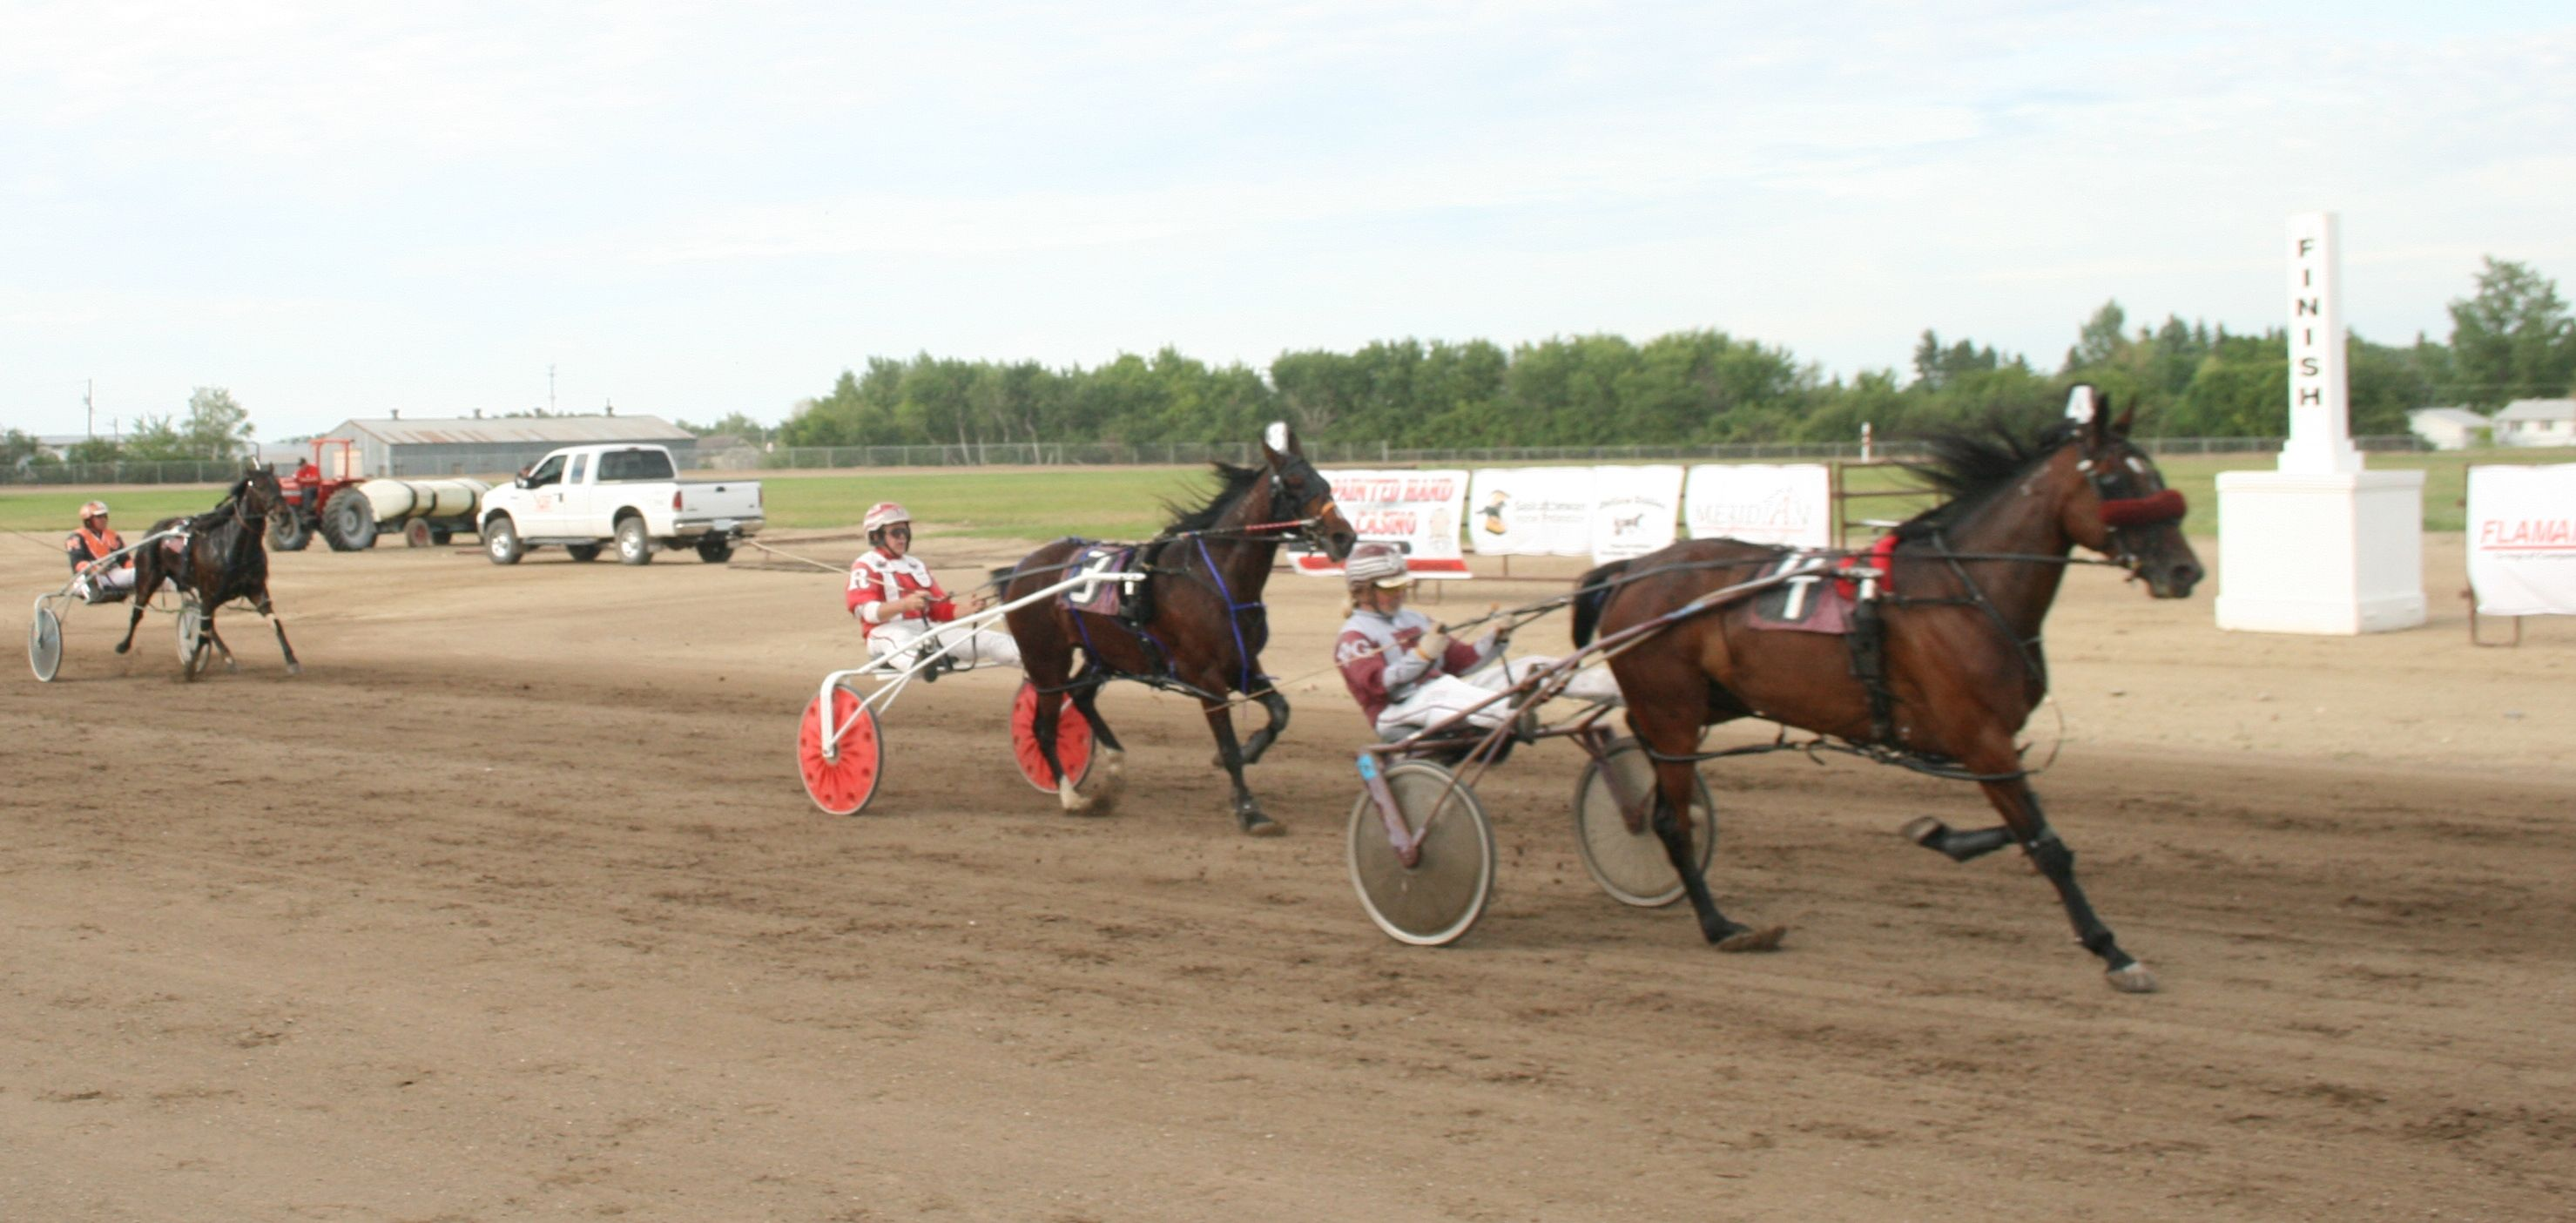 Pin by vanessa on harness racing pinterest harness racing